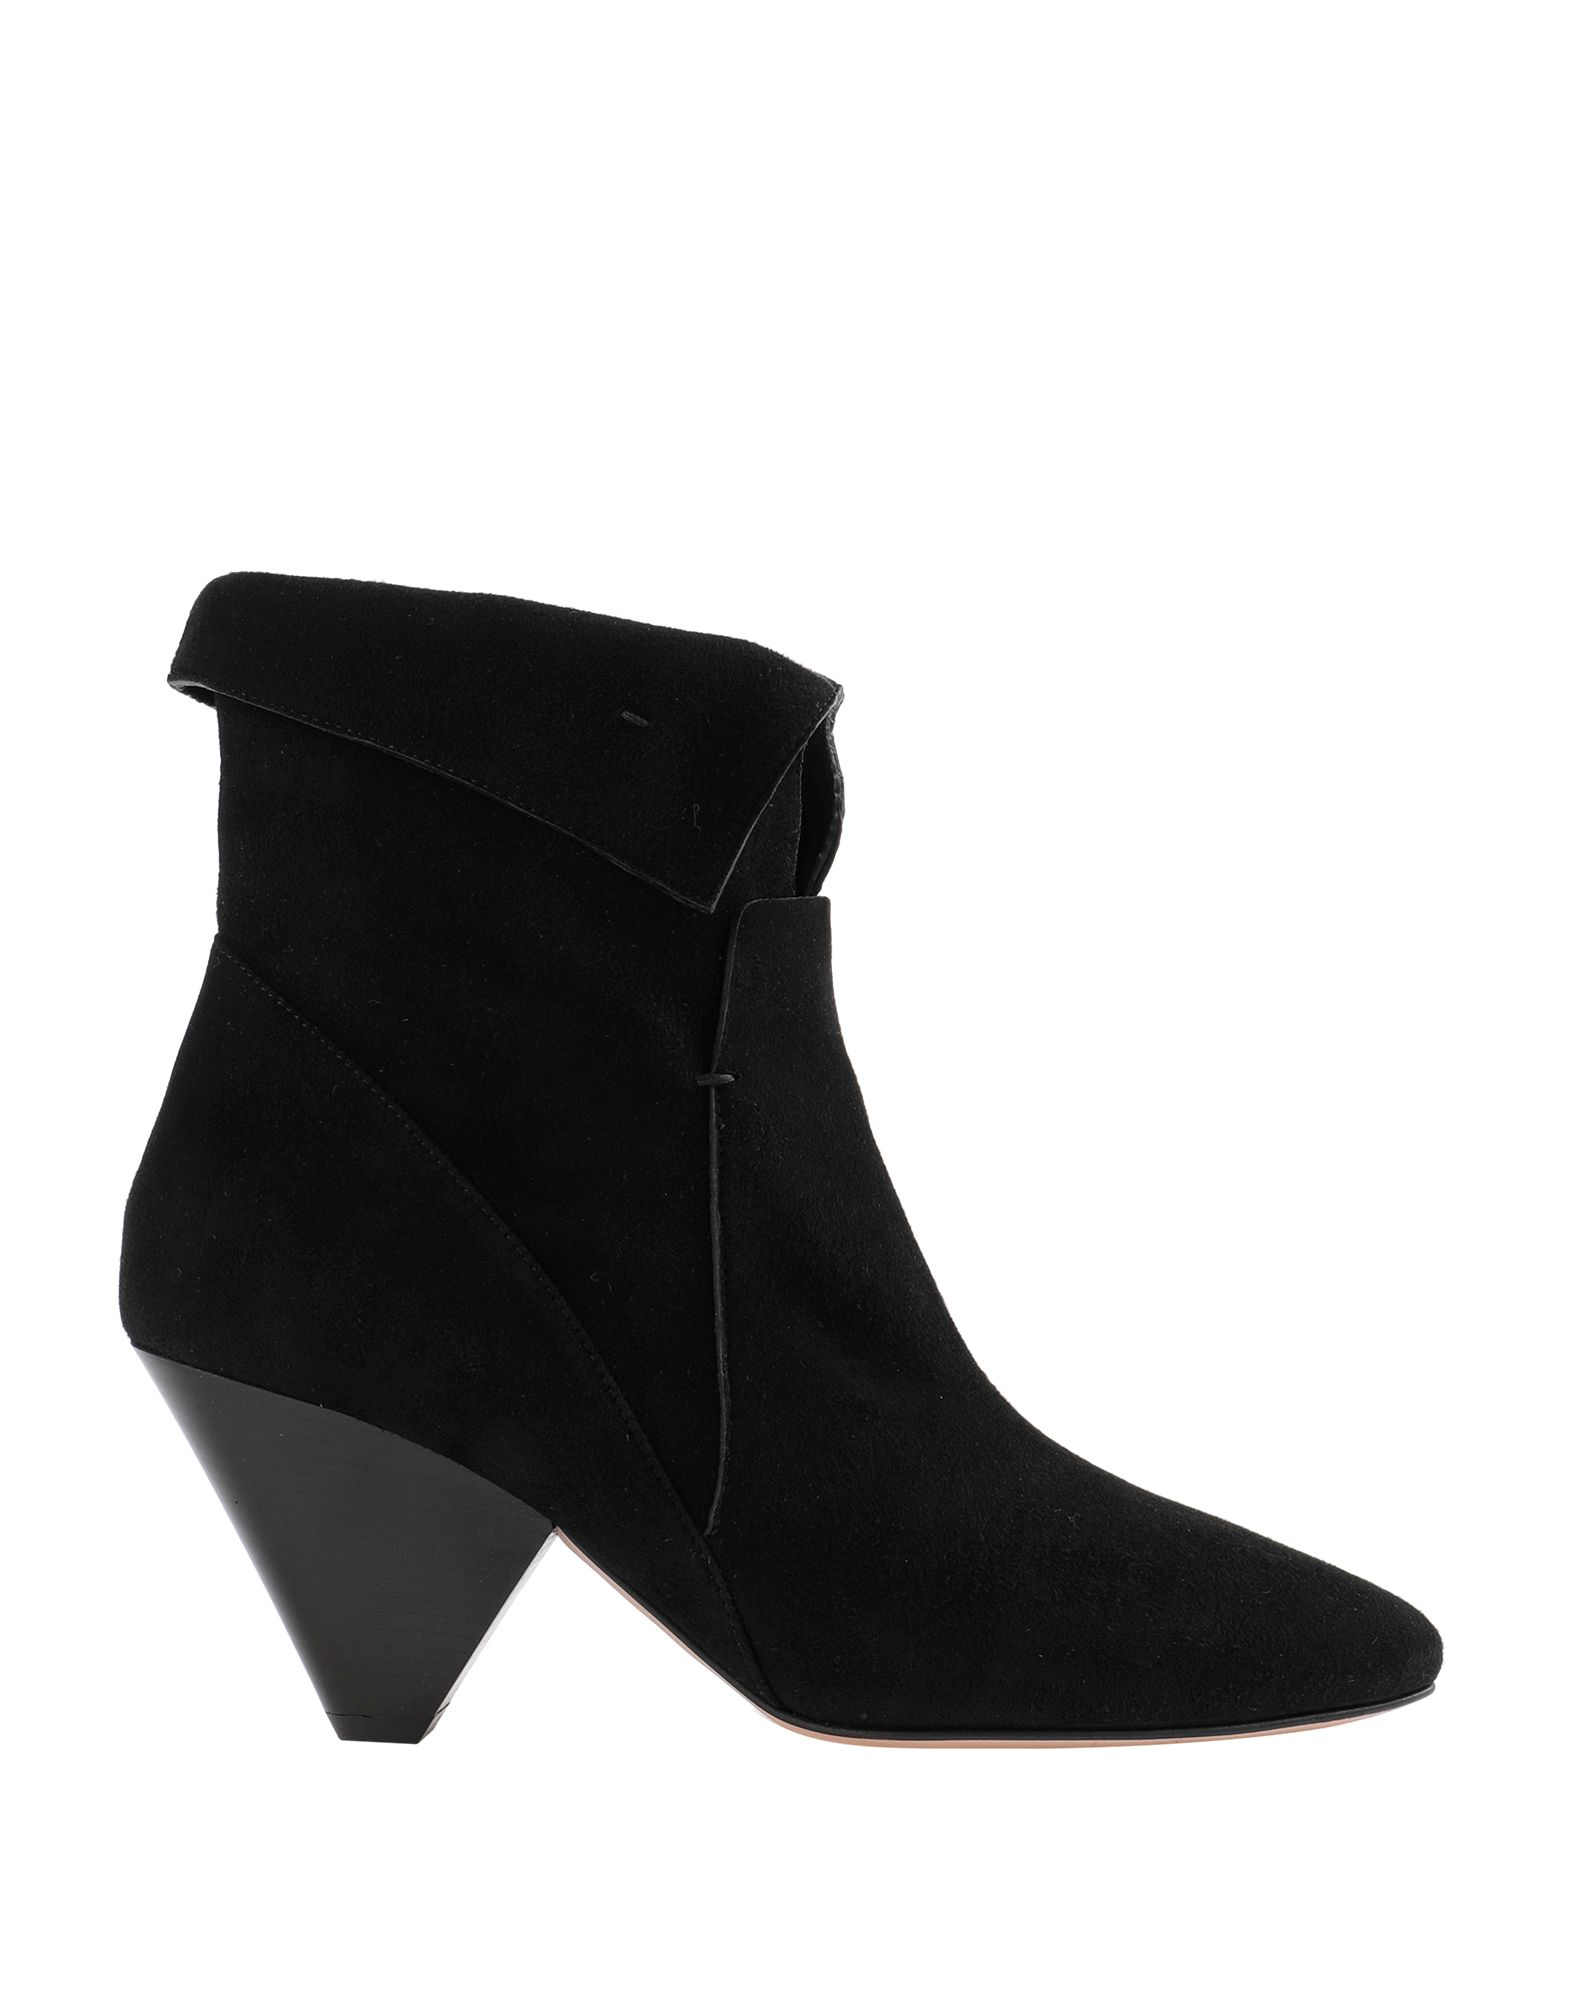 VERONICA BEARD Ankle boots. suede effect, stitching, solid color, narrow toeline, cone heel, leather lining, leather sole, contains non-textile parts of animal origin, zipper closure. Soft Leather